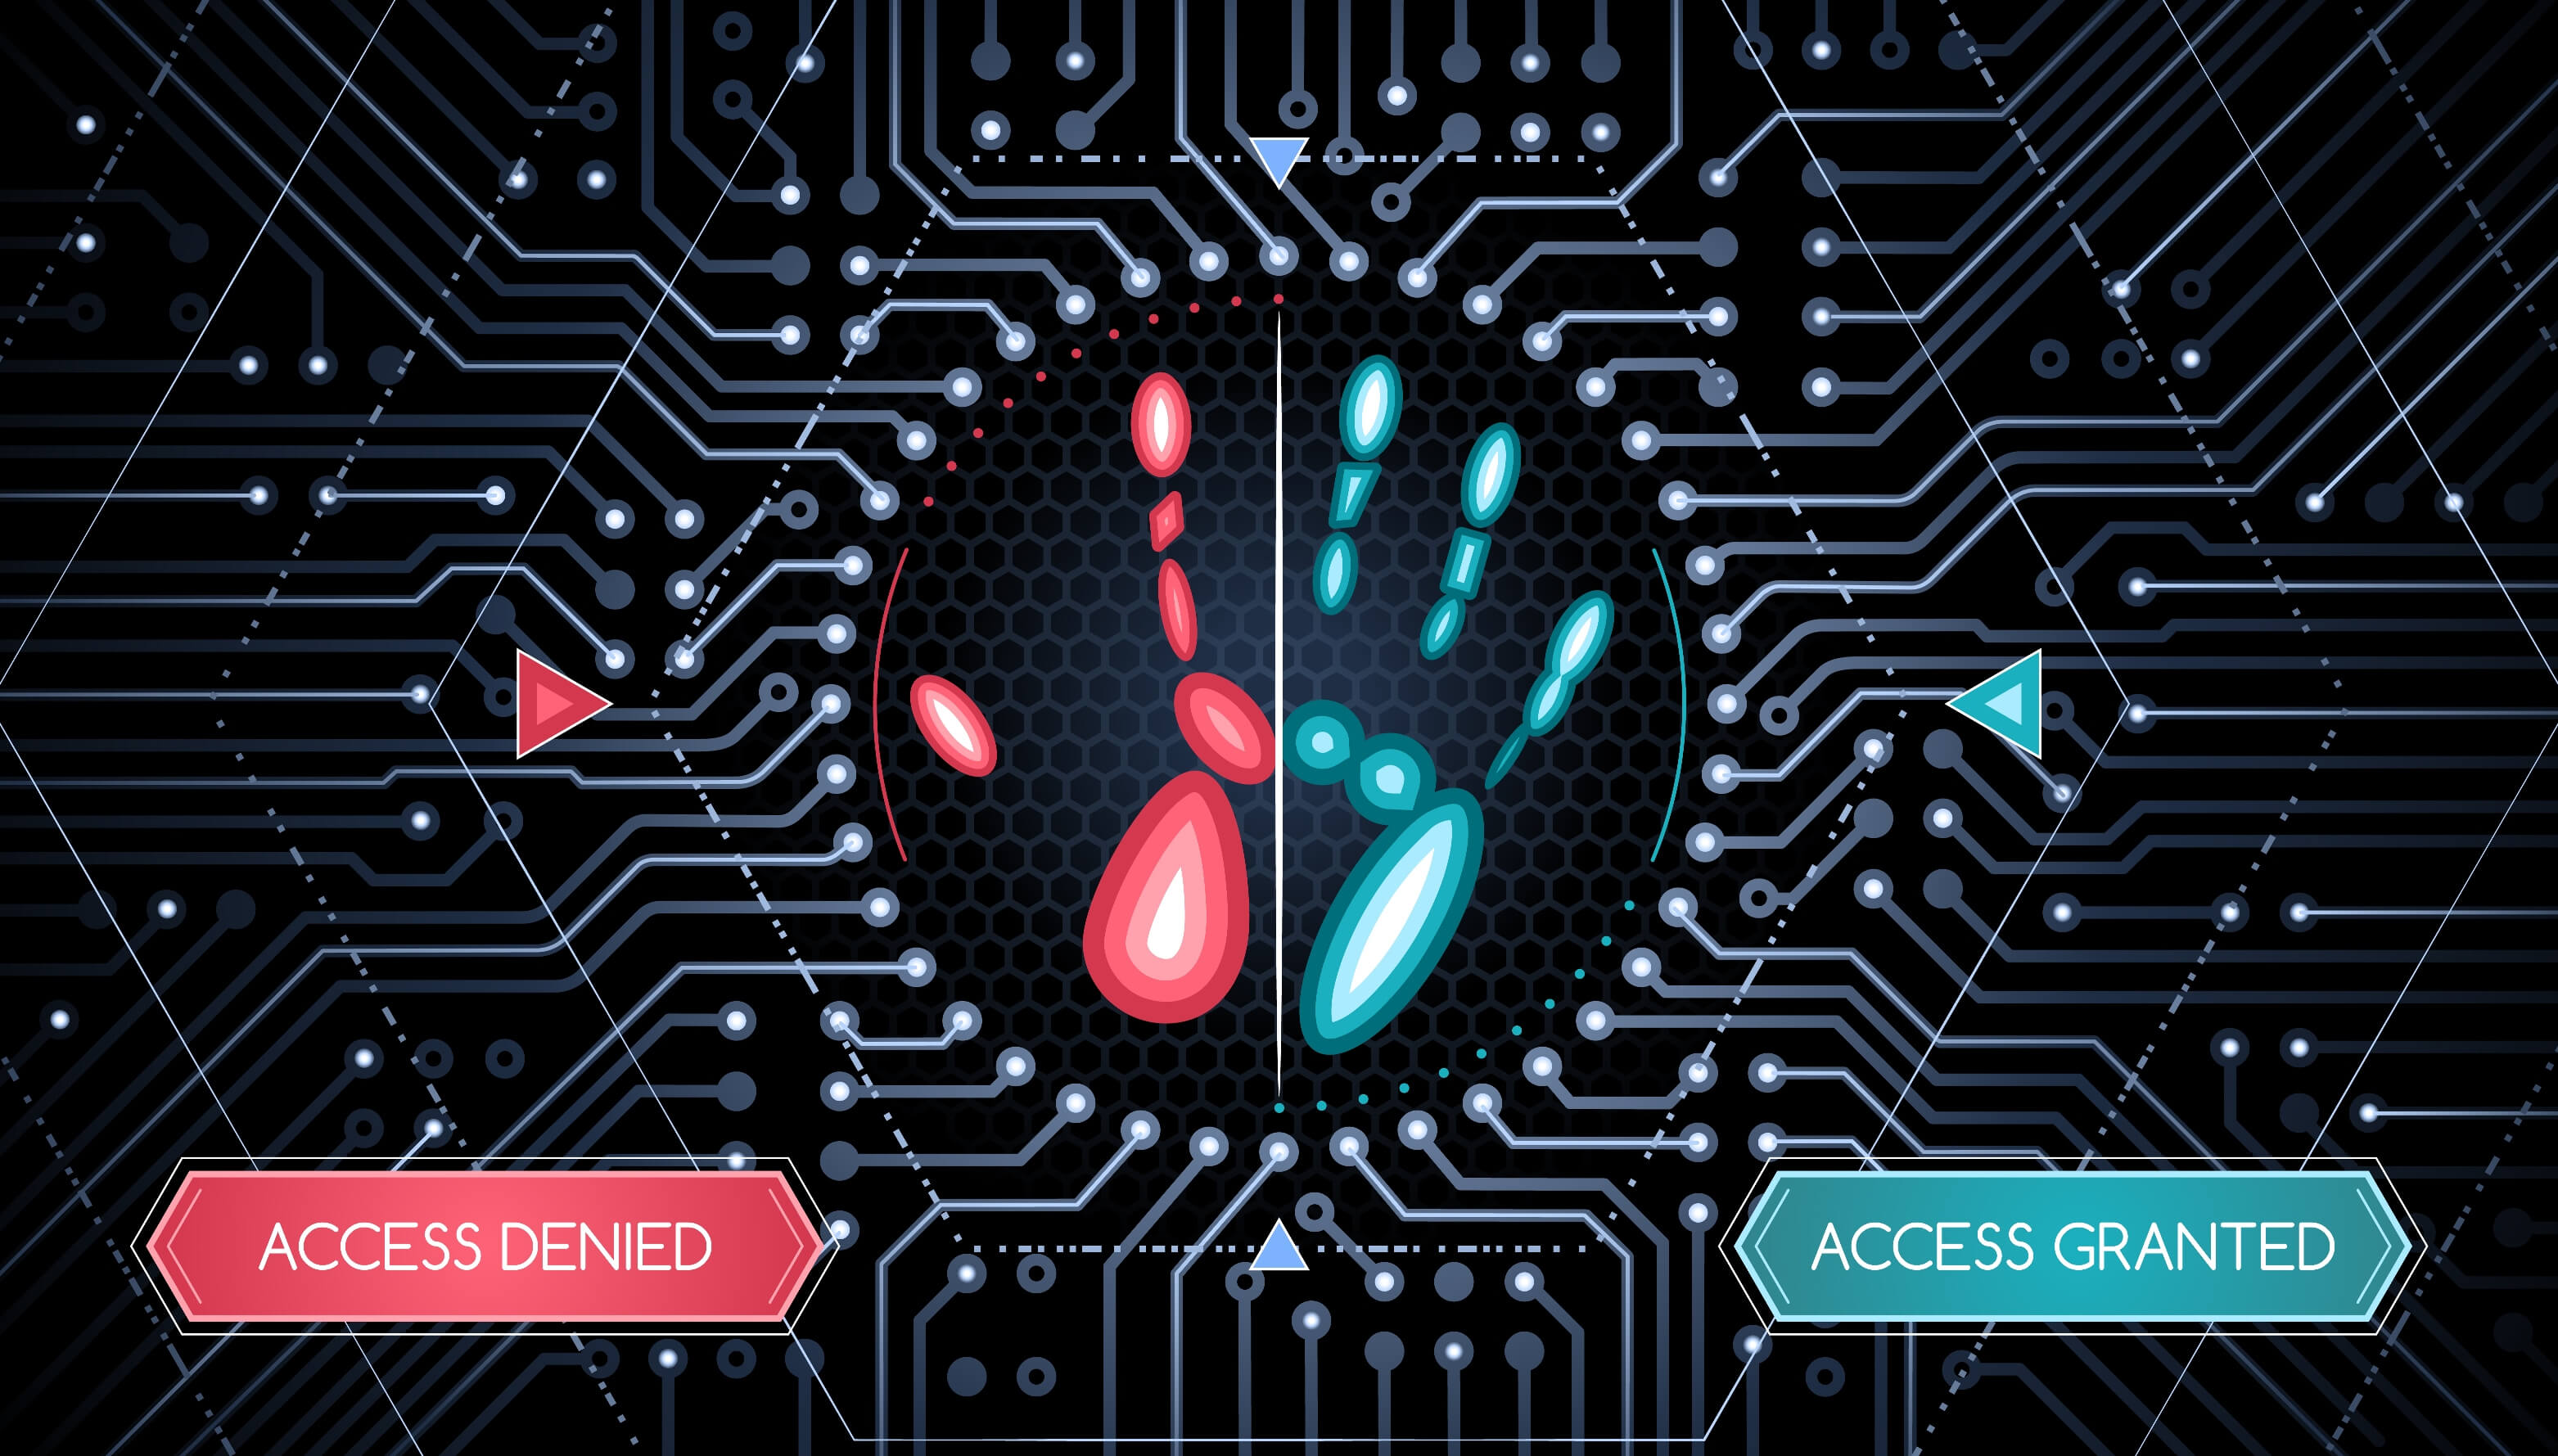 Digital hand says access gained and access denied - iomart